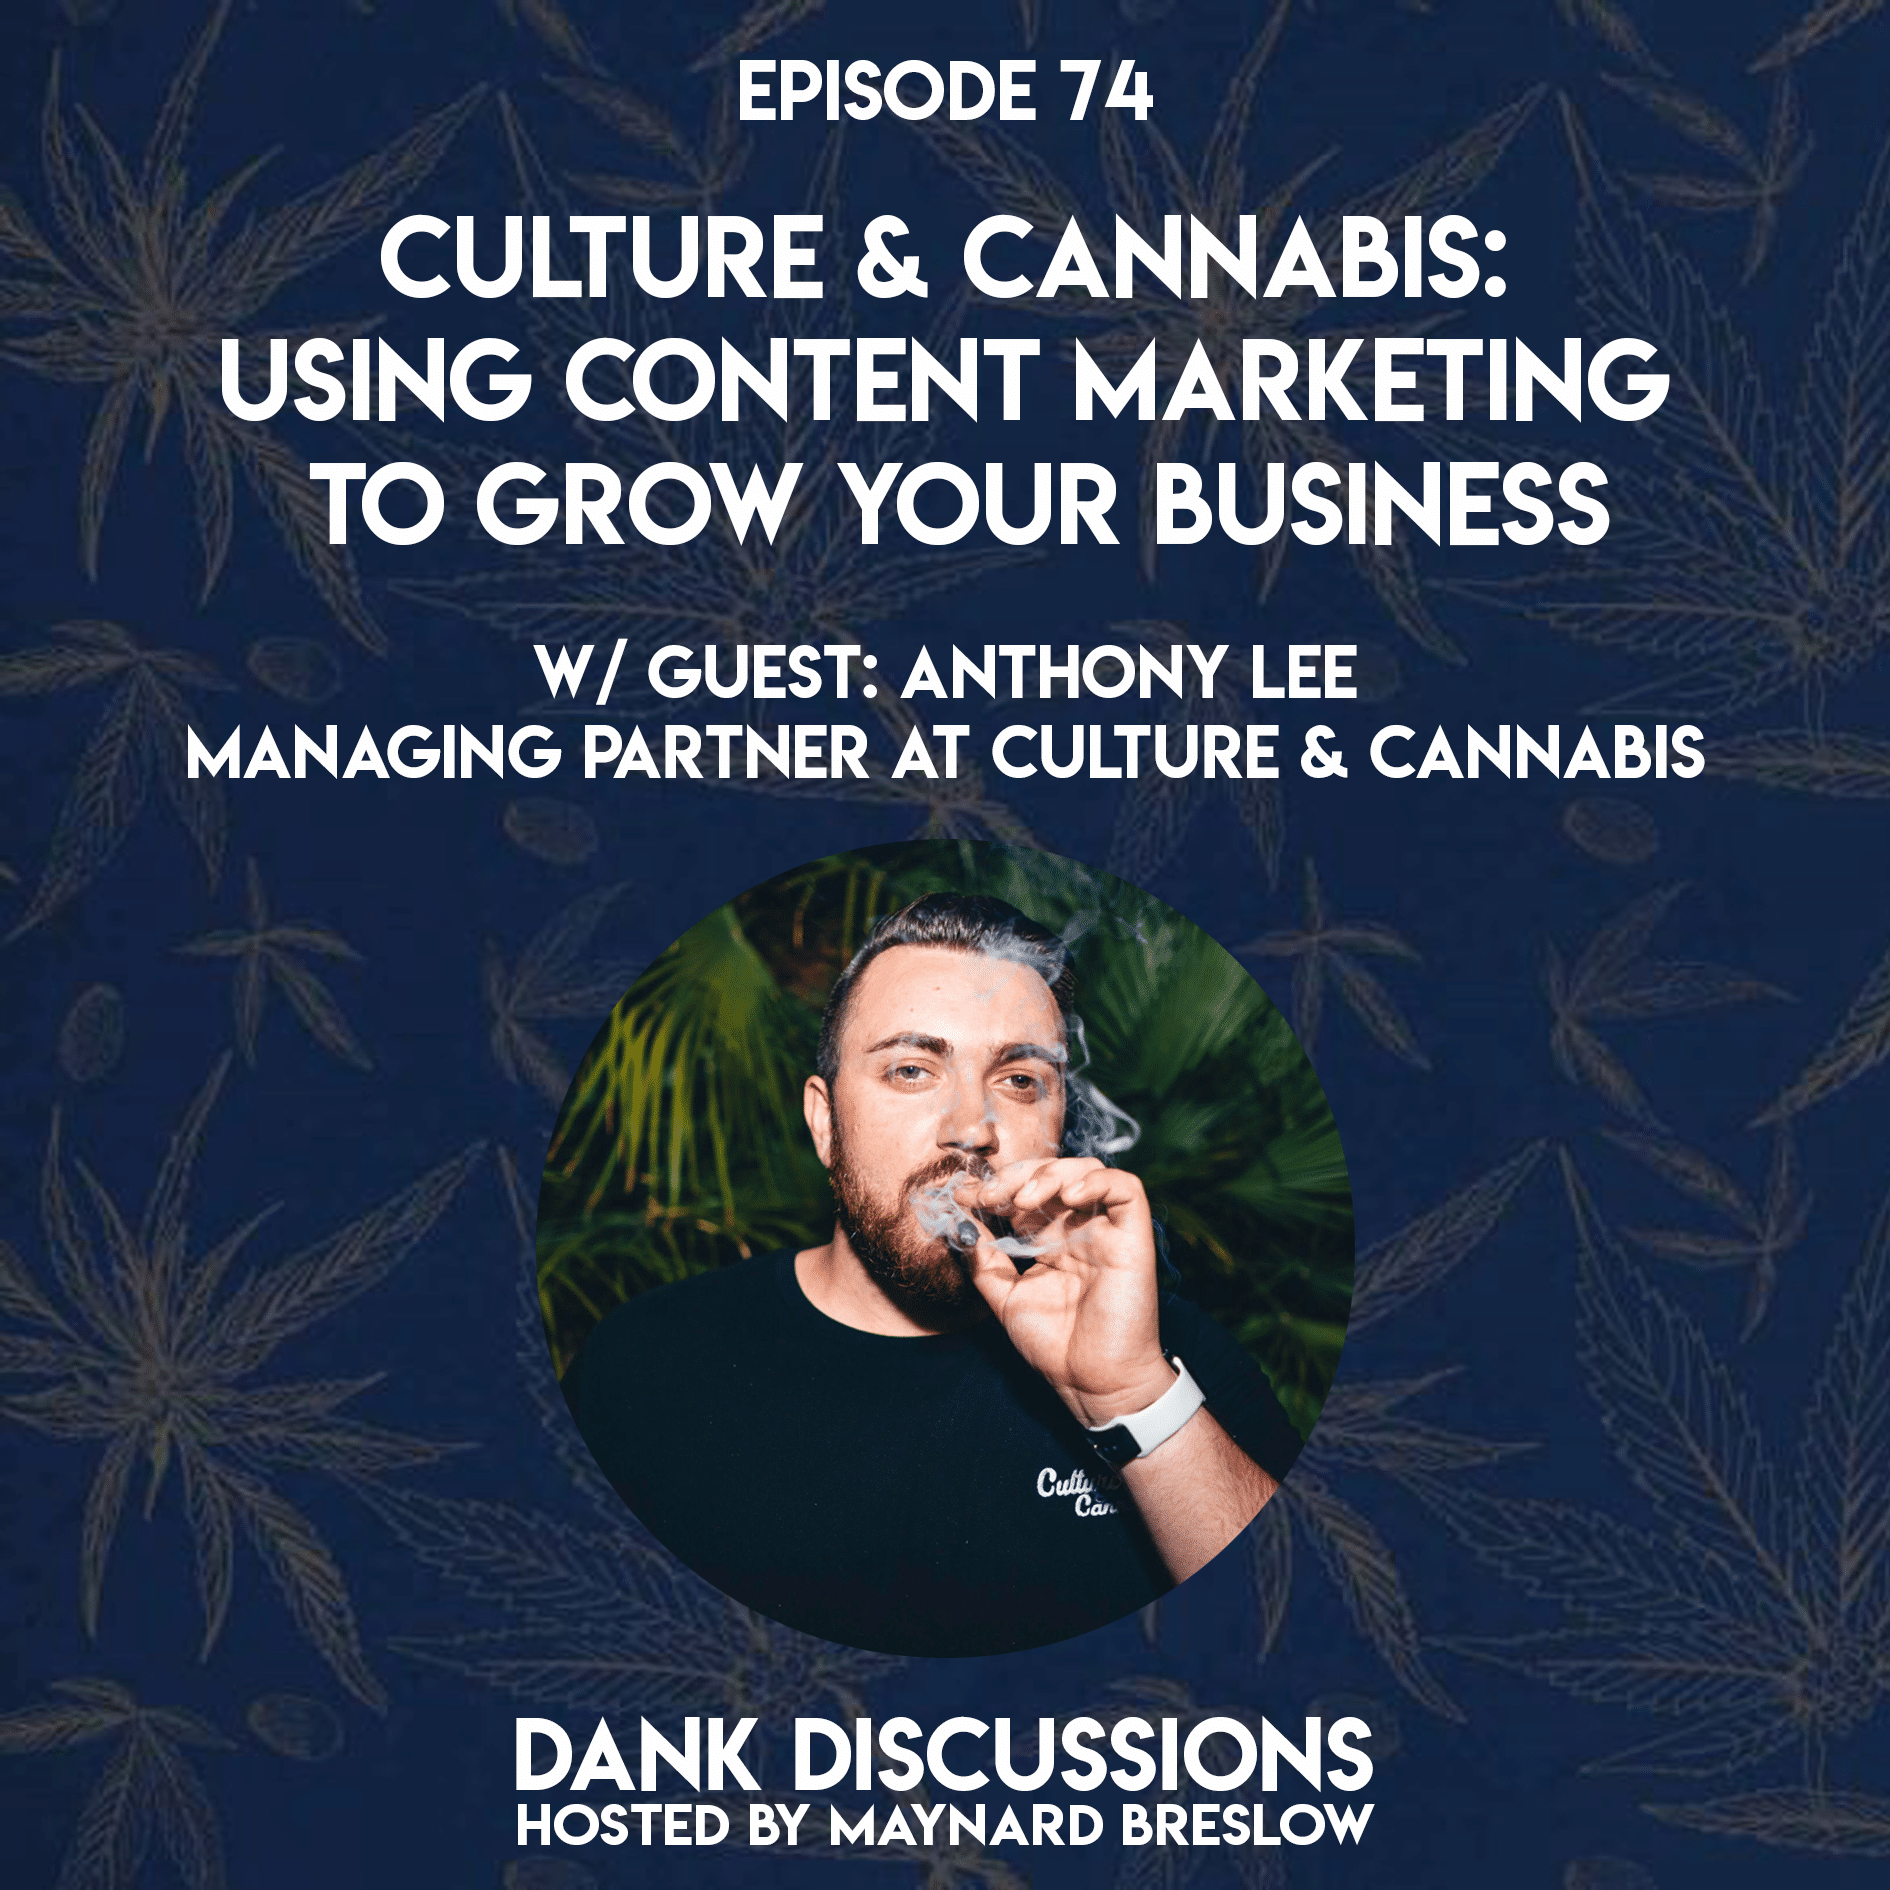 Culture & Cannabis: Using Content Marketing to Grow Your Business